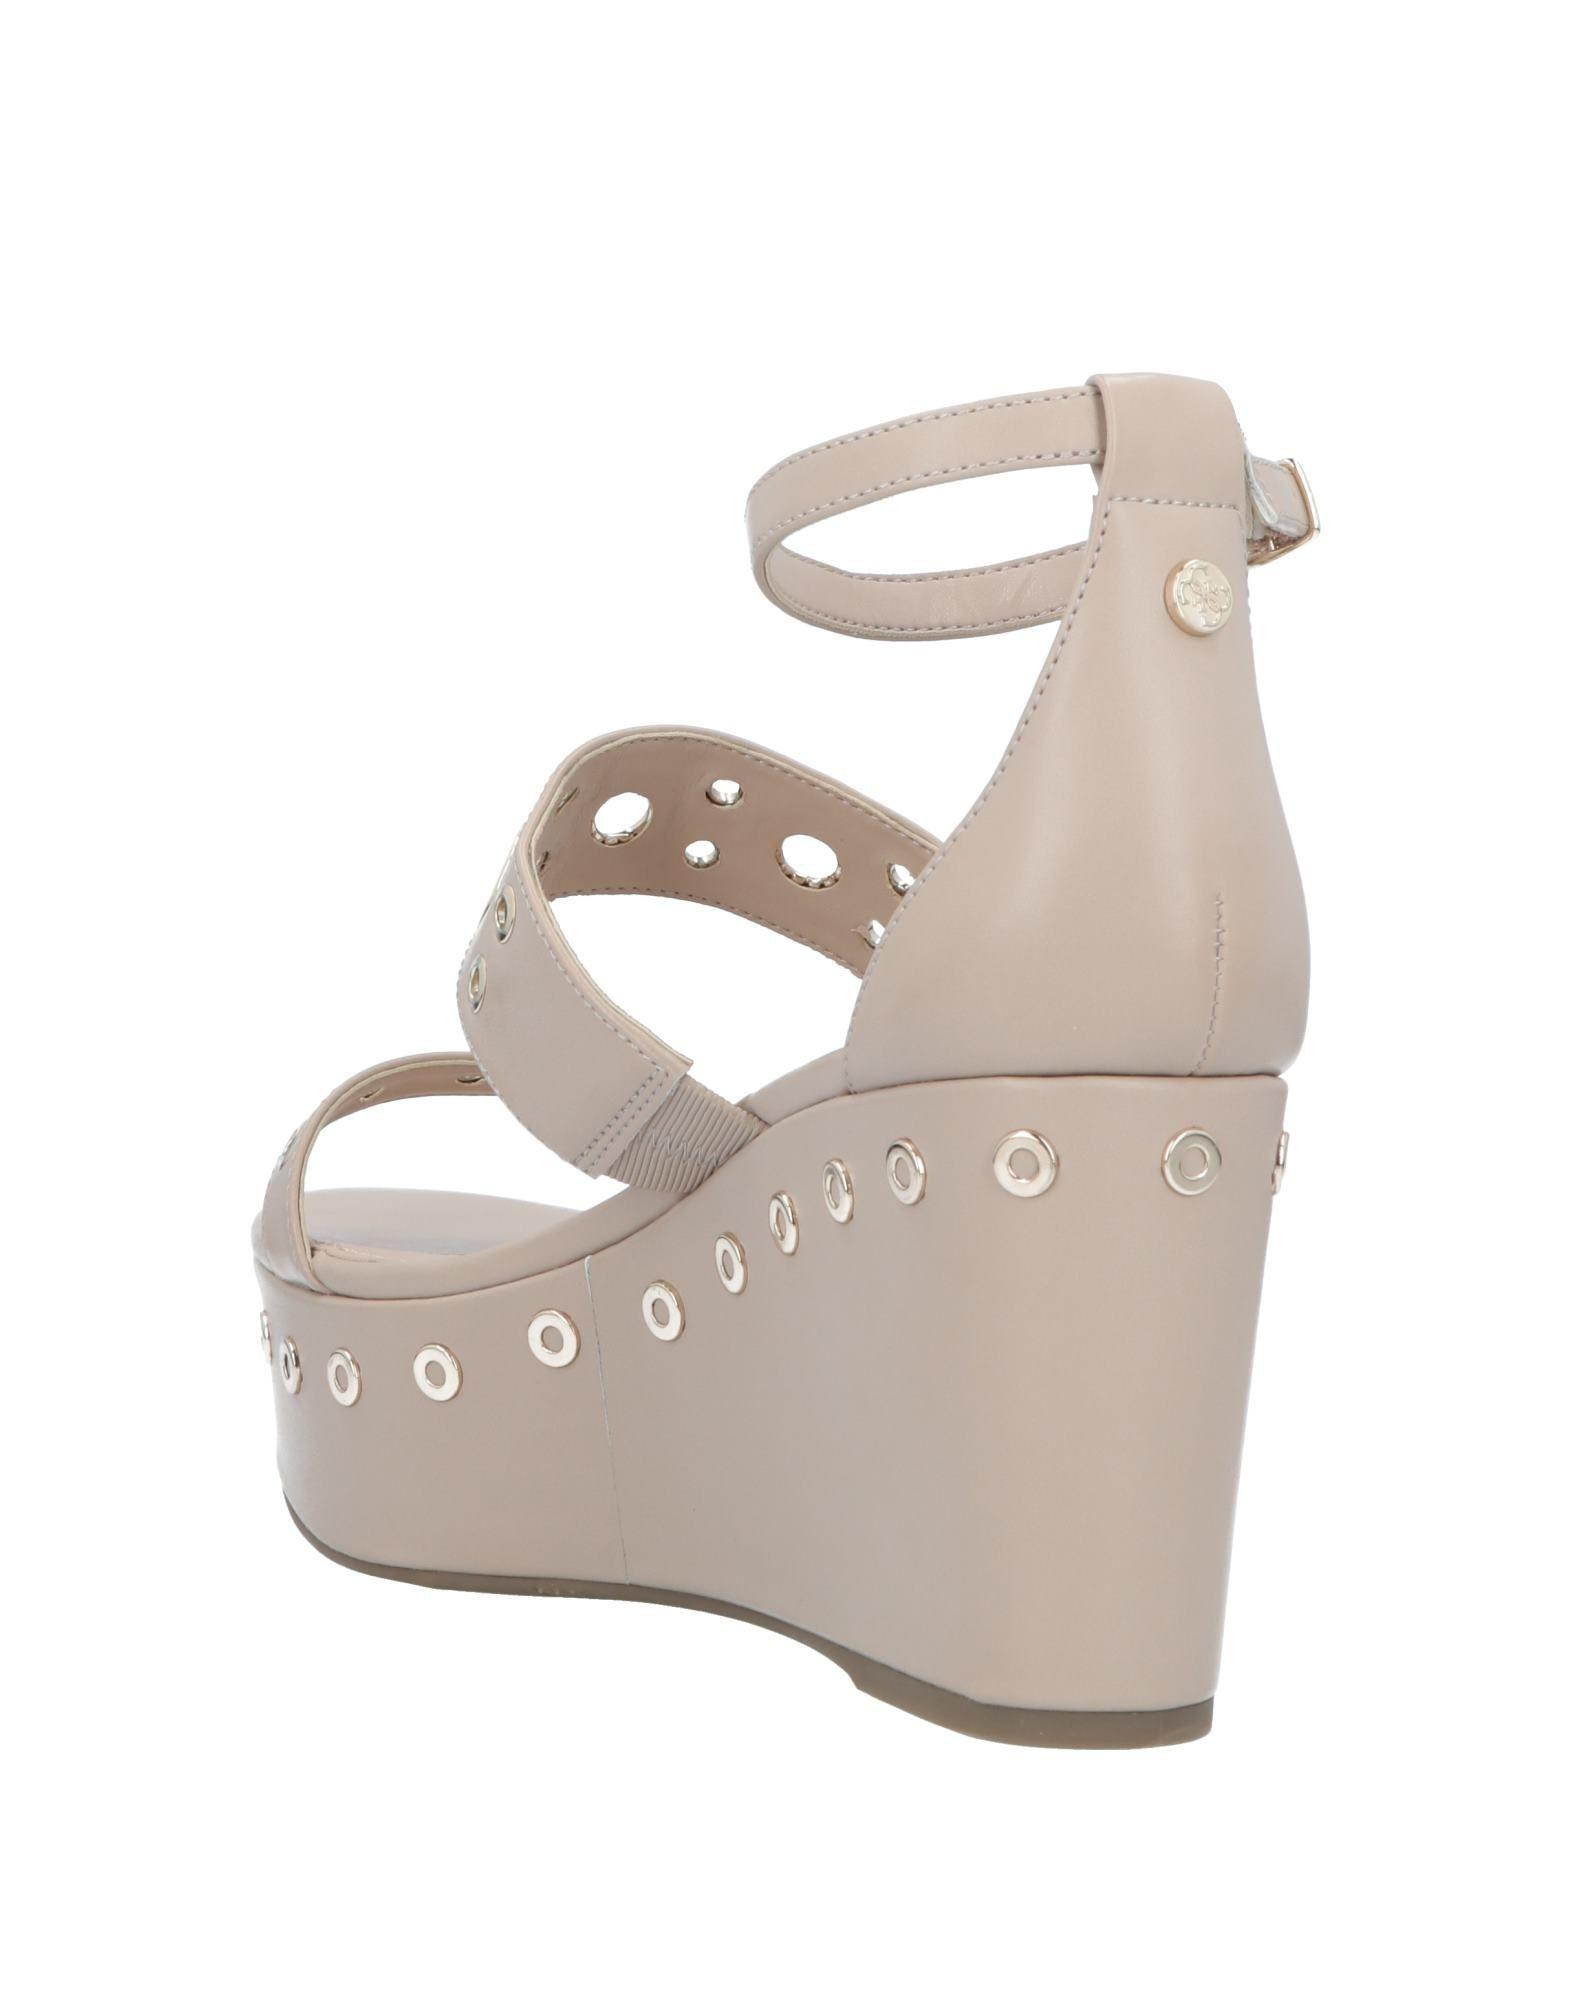 bcc90cd8a68053 Lyst - Guess Sandals